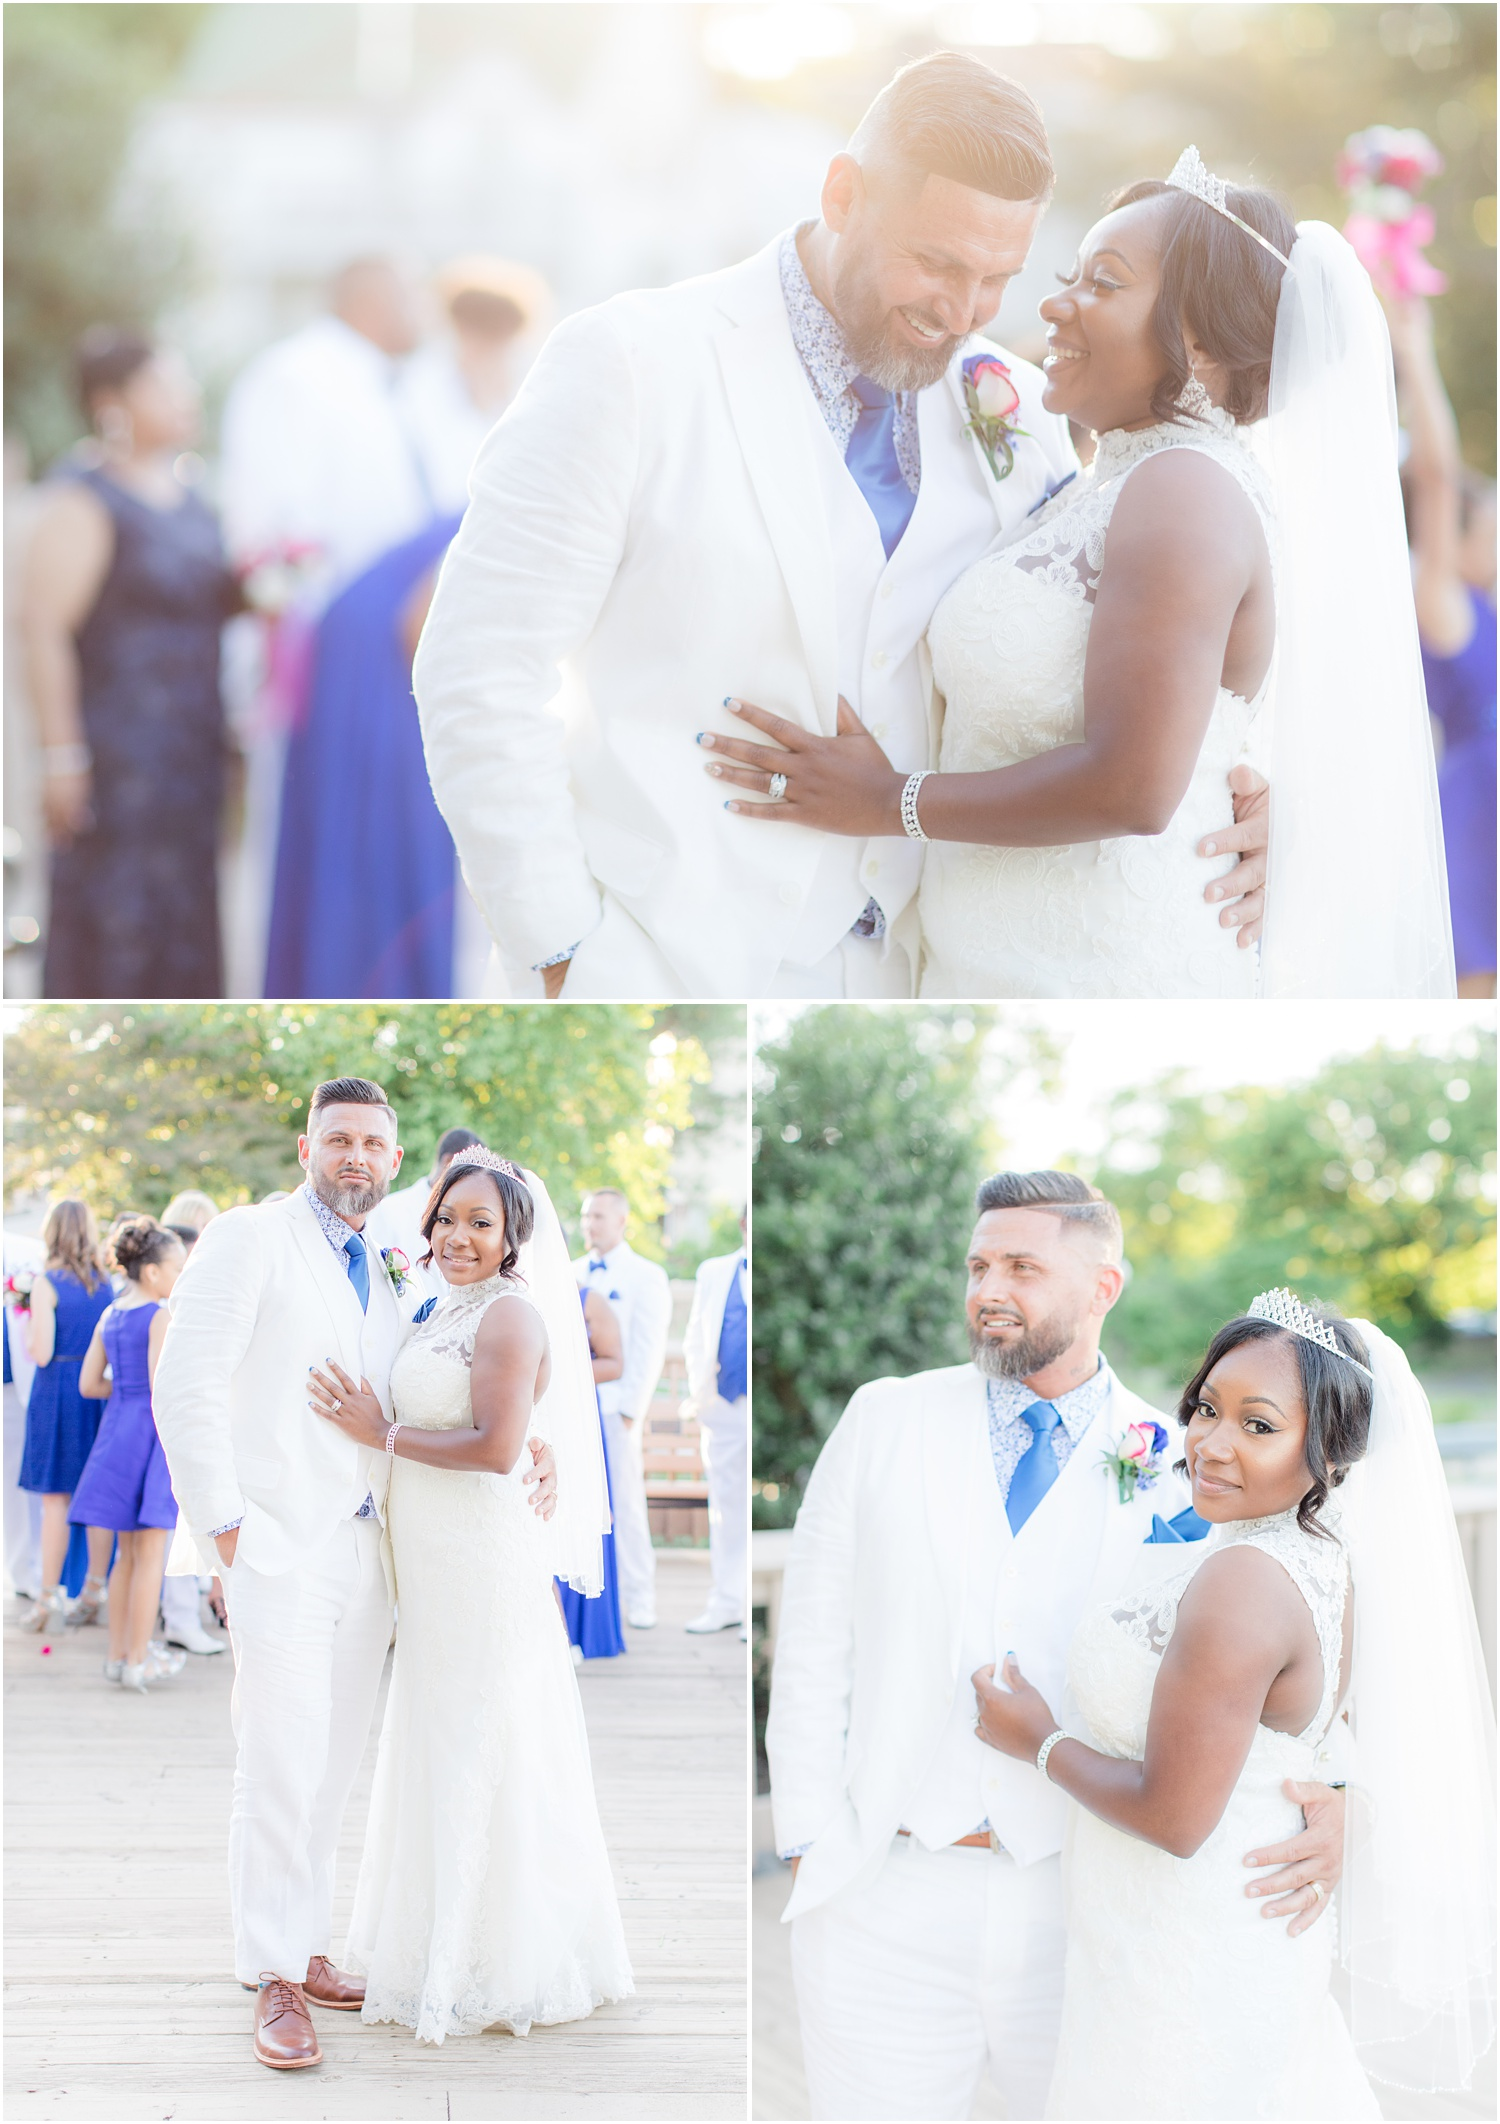 dreamy Bride and groom photos in Chesapeake City, MD.